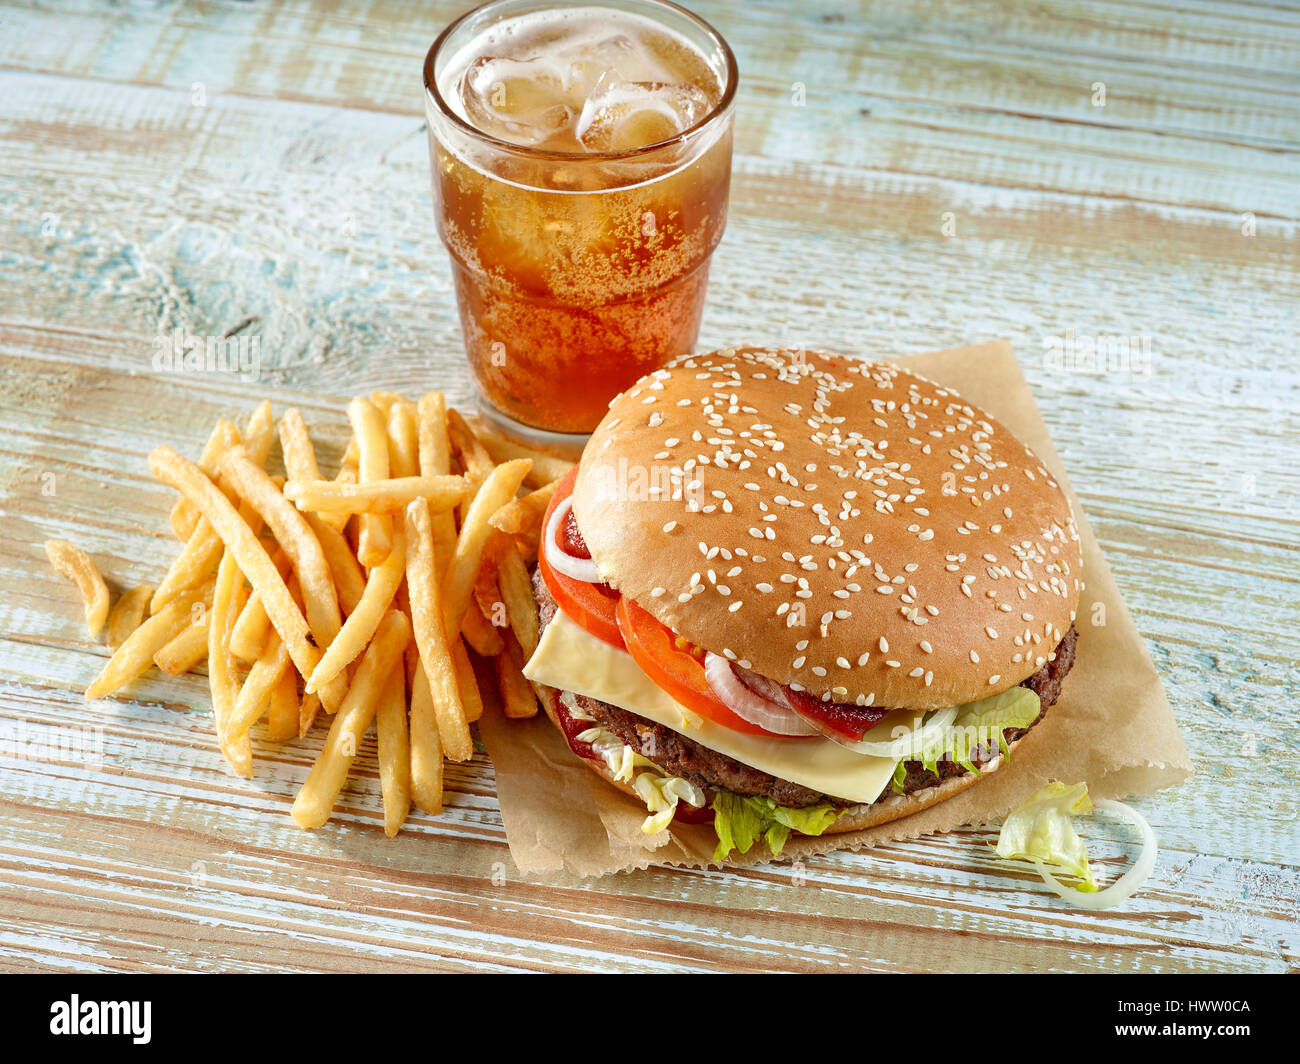 fresh tasty burger and cola on wooden table - Stock Image